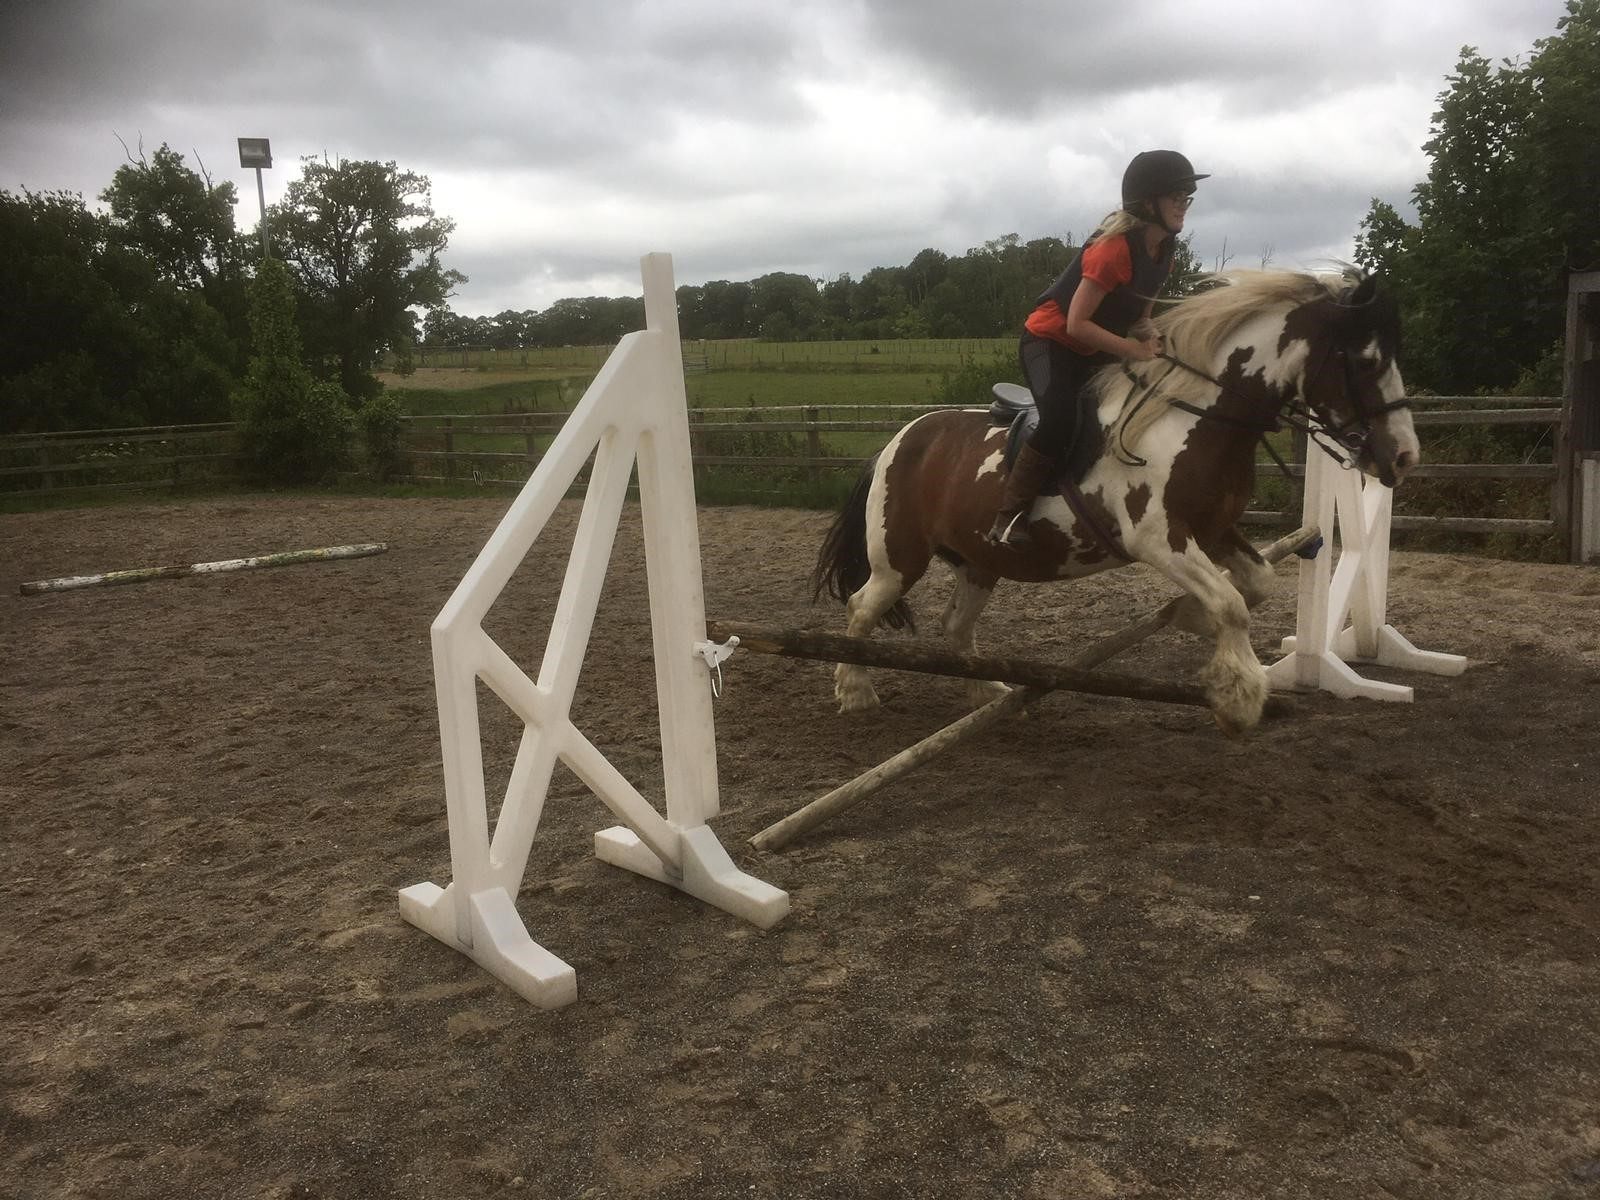 Llannerch pony jumping